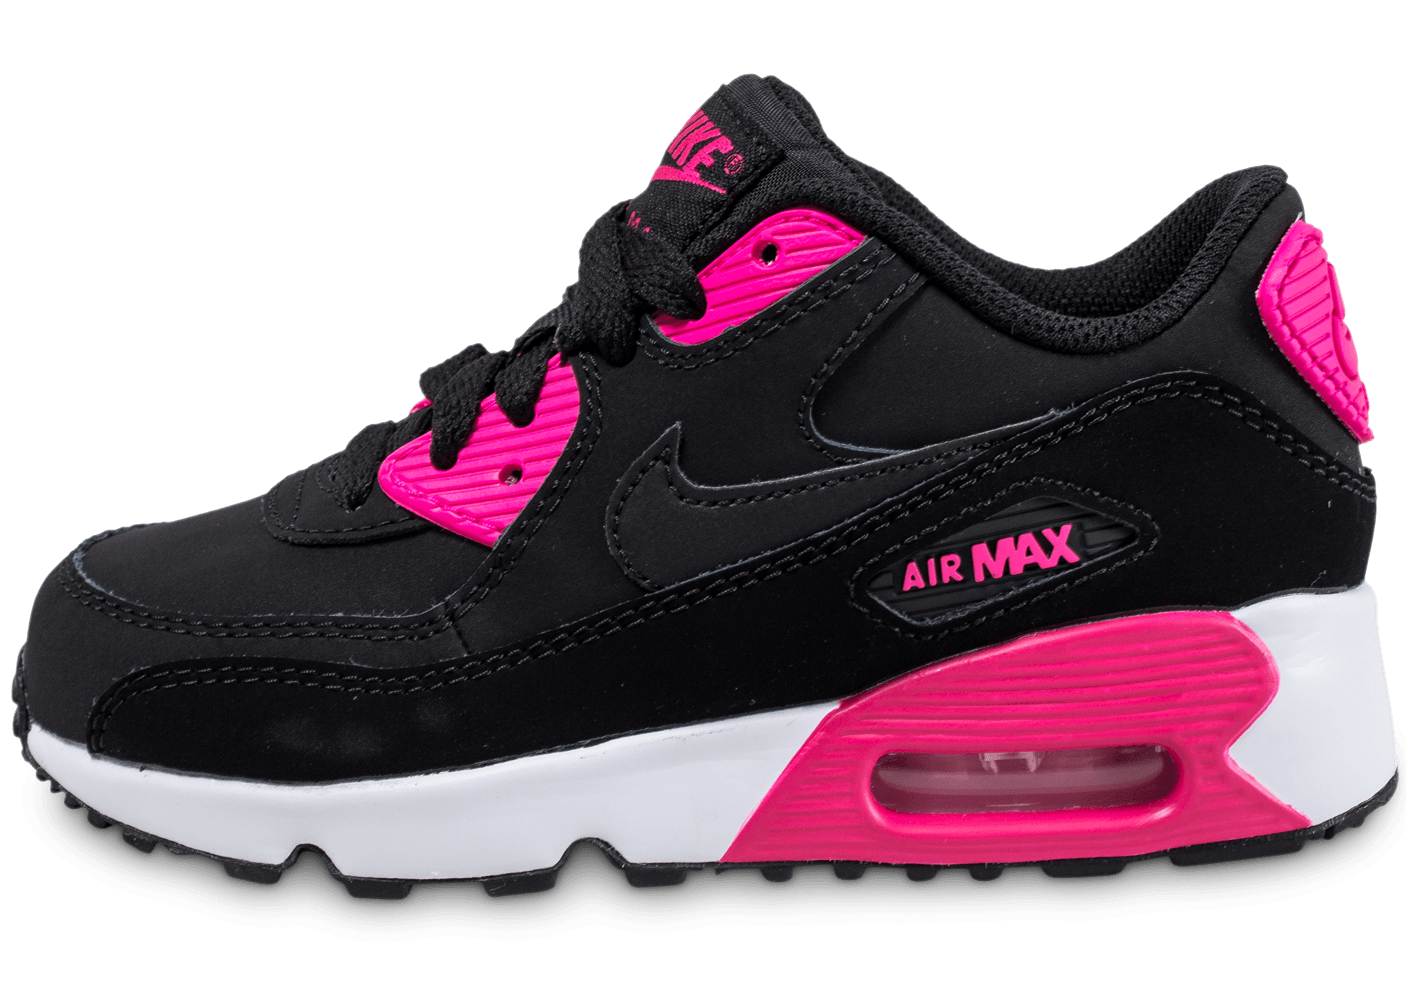 nike air max 90 enfant noire et rose chaussures enfant chausport. Black Bedroom Furniture Sets. Home Design Ideas